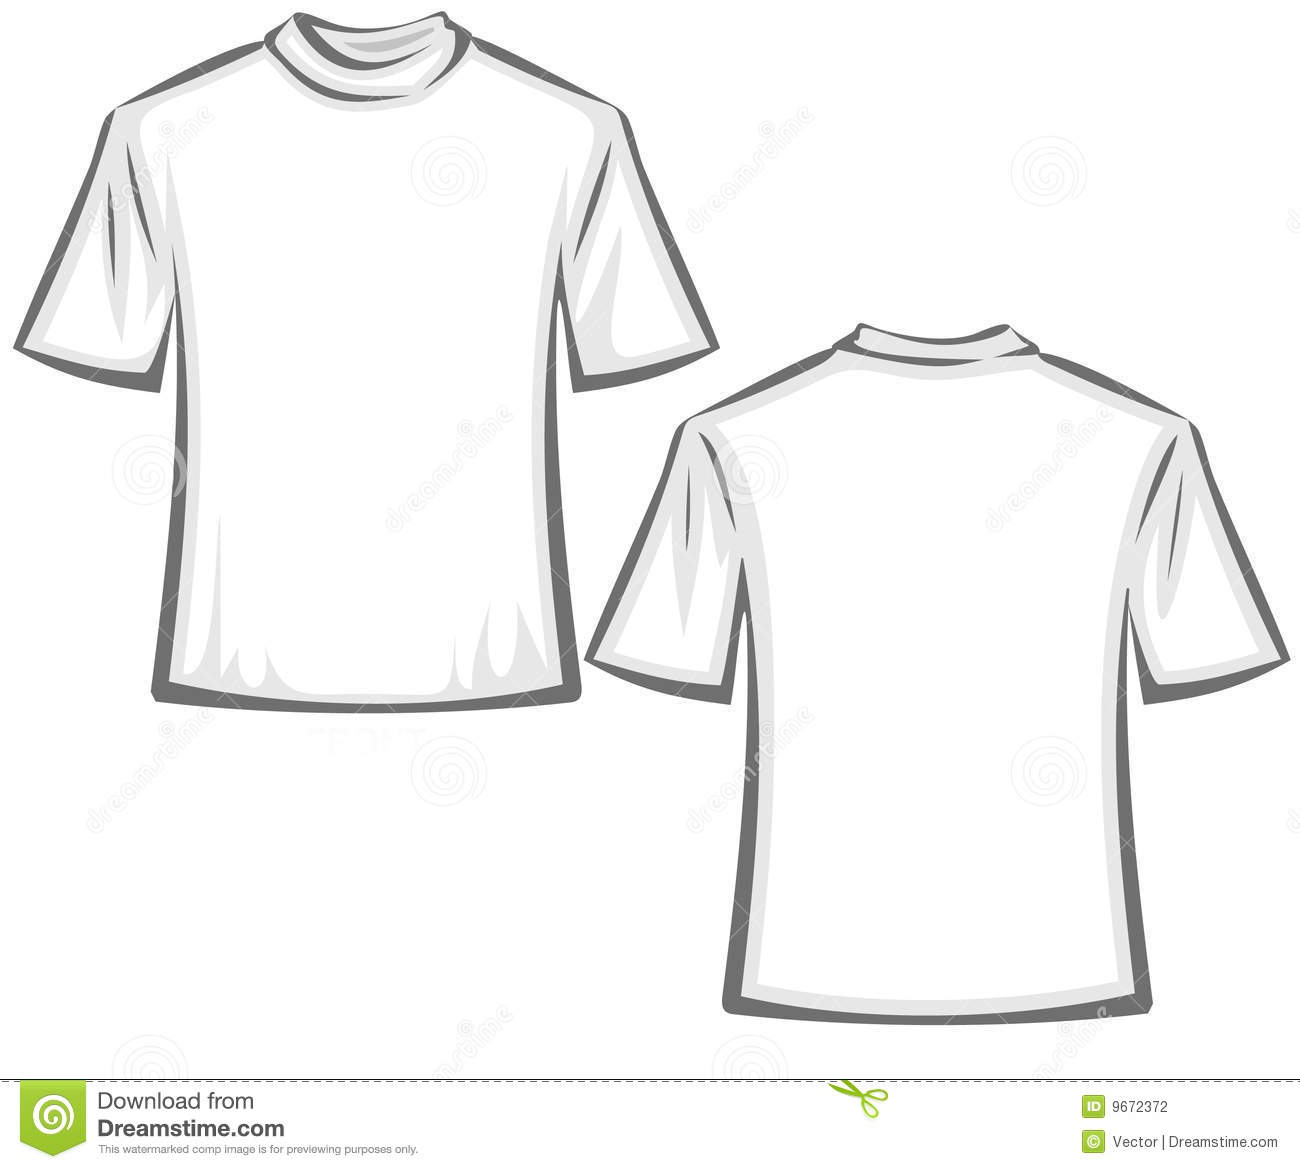 Blank T Shirts Illustration Stock Vector